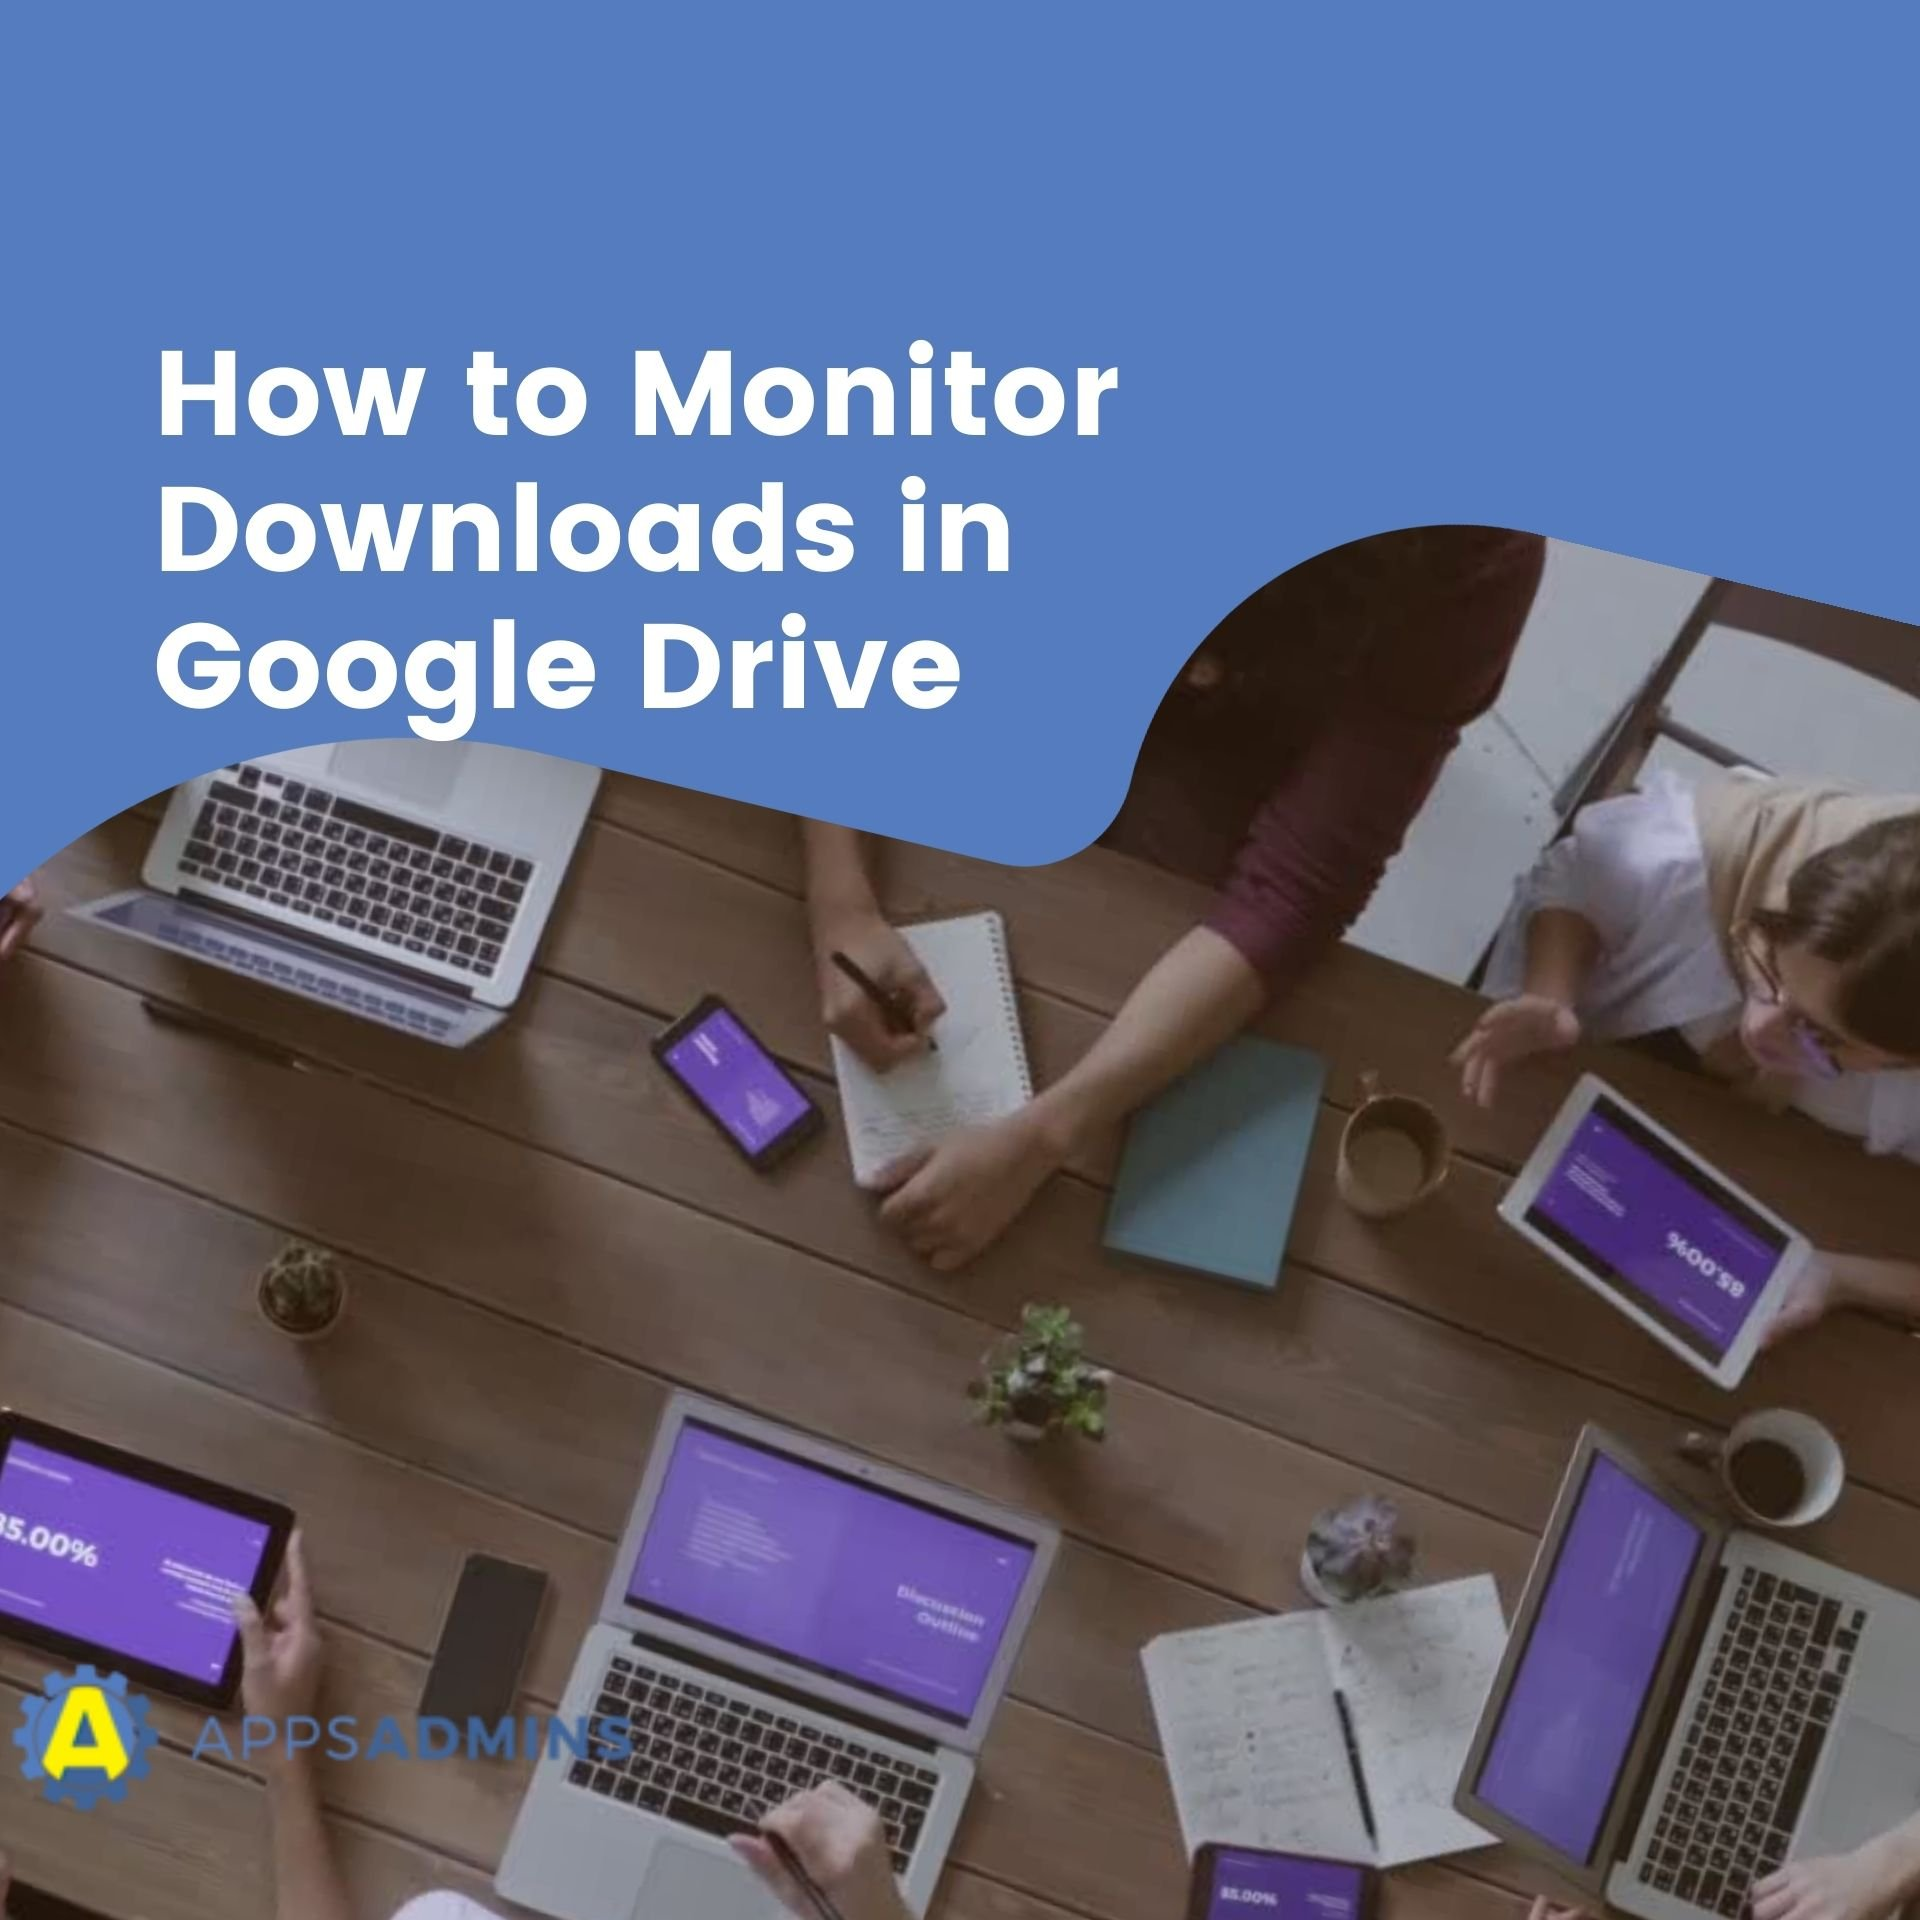 How-to-monitor-downloads-in-google-drive